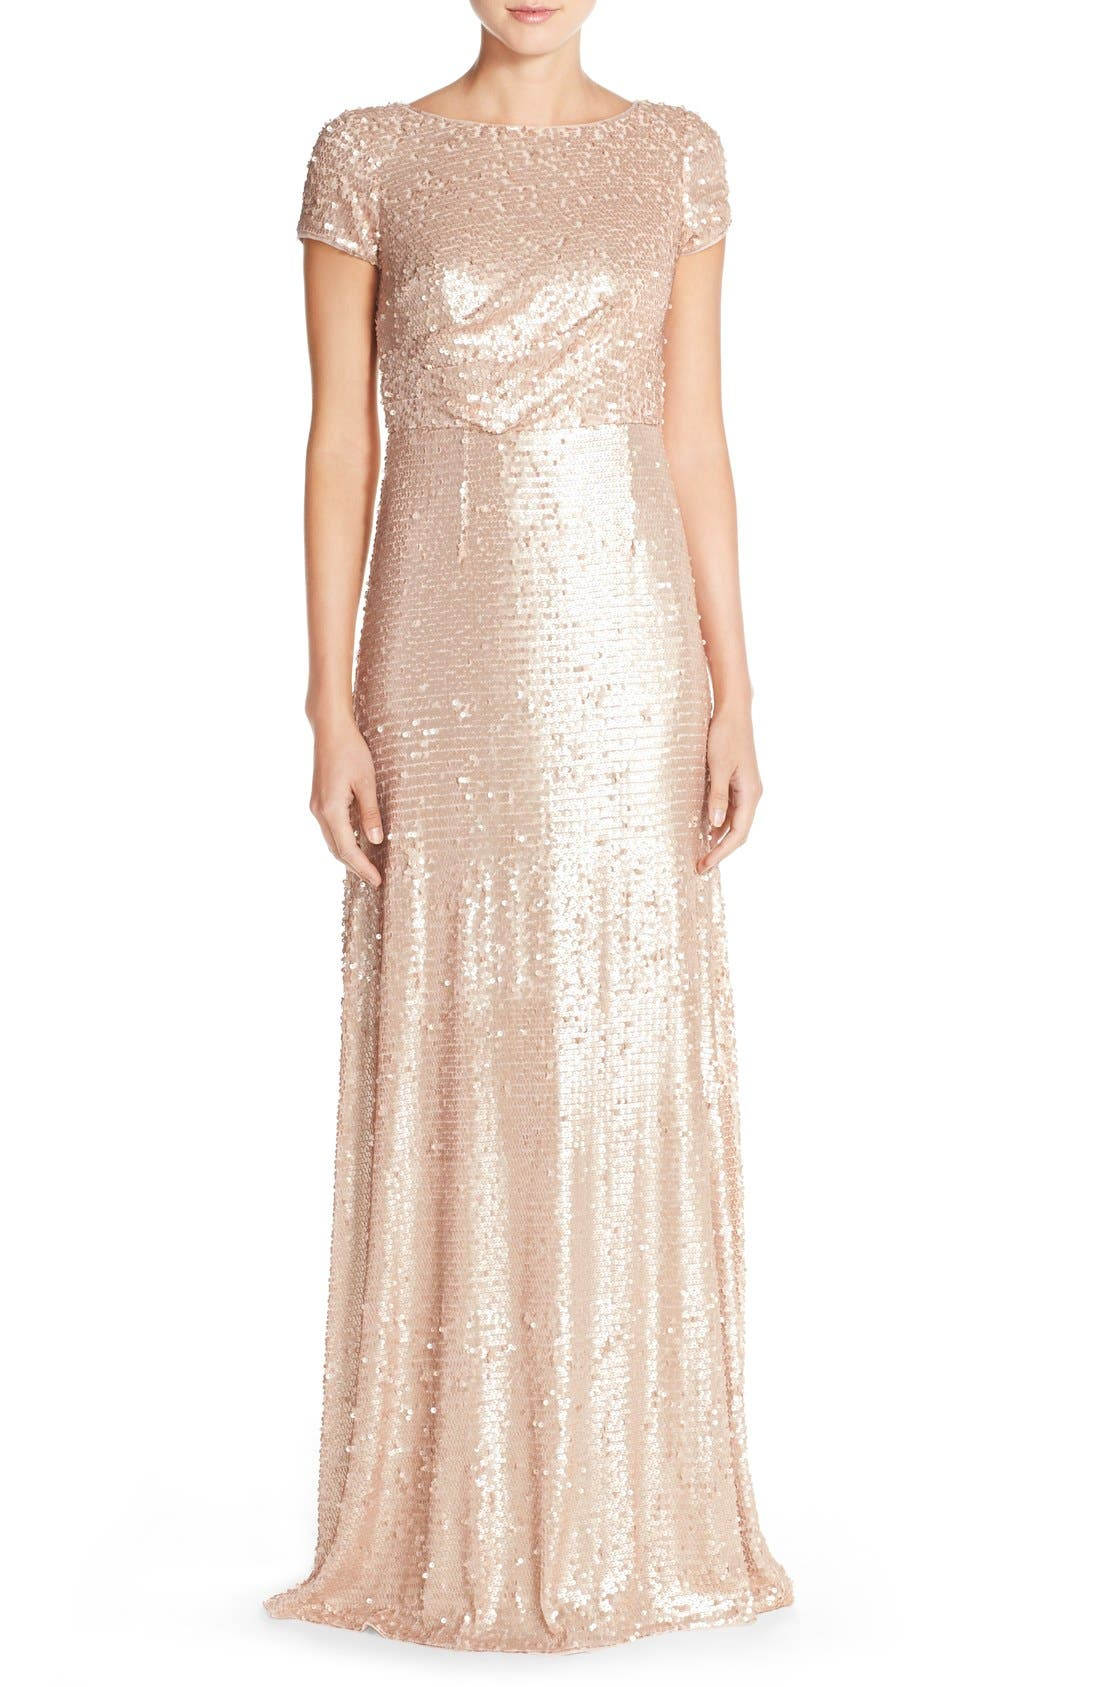 Main Image - Adrianna Papell Sequin Mesh A-Line Gown